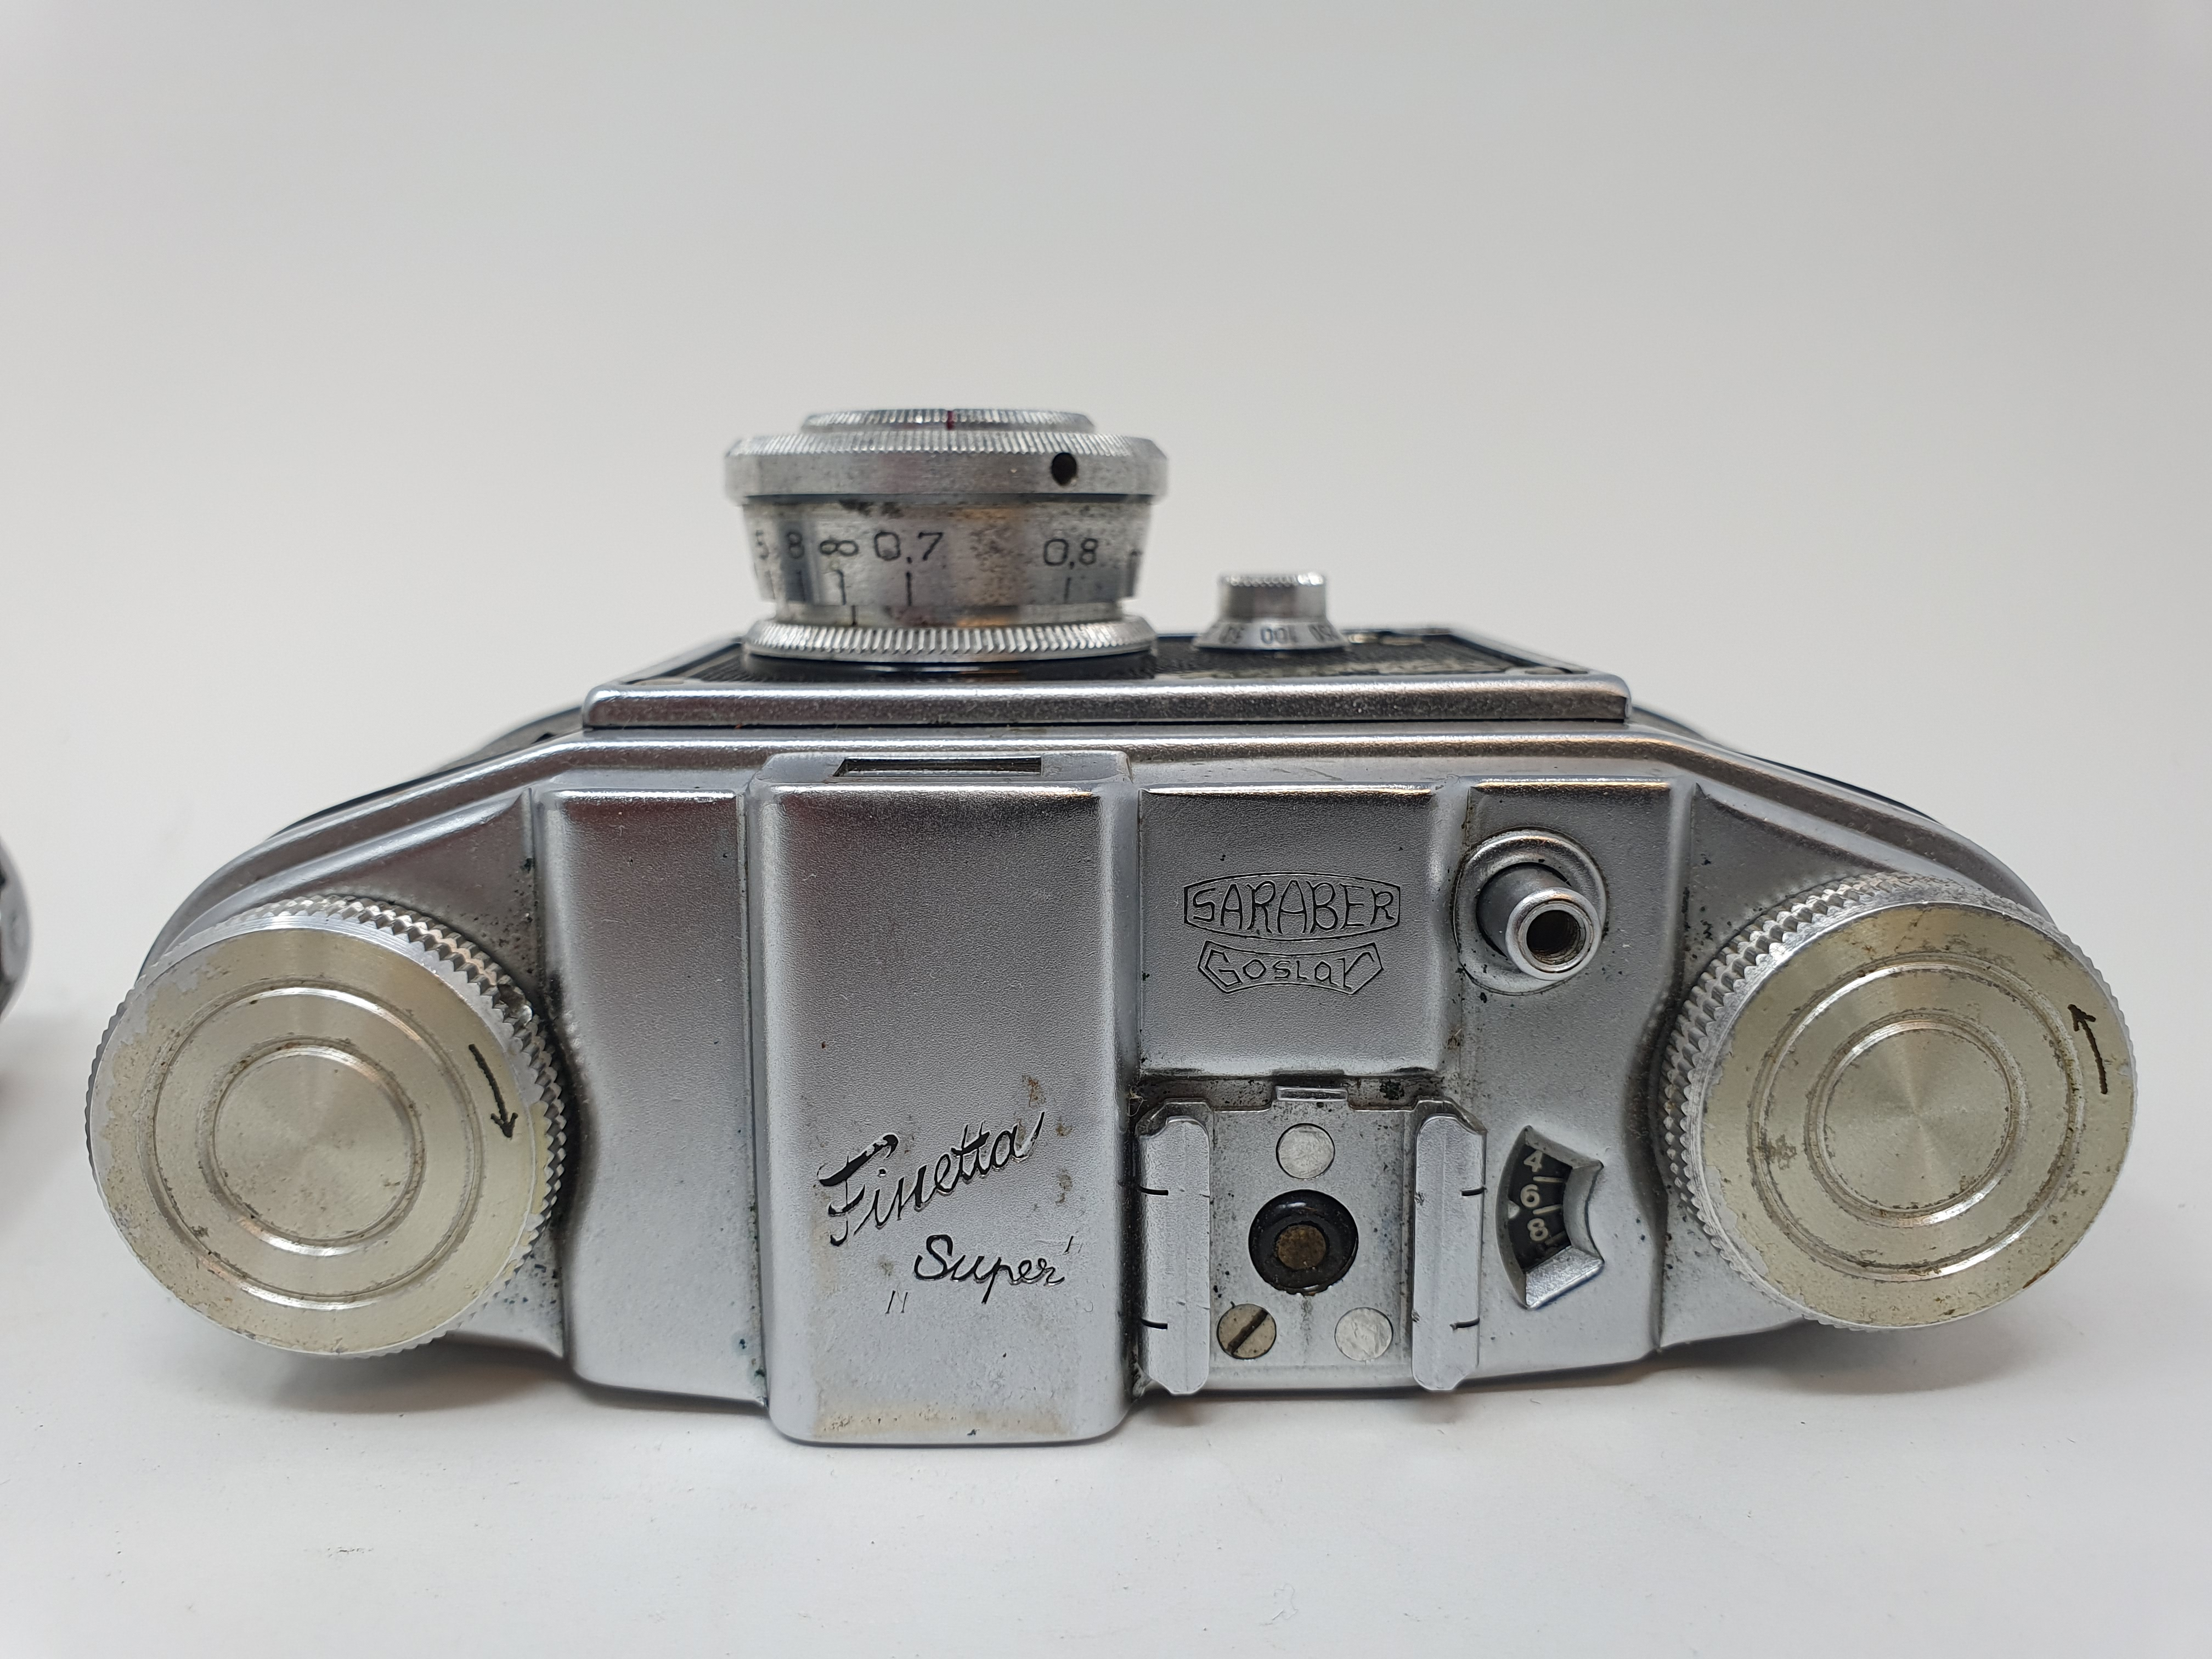 A Saraber Finetta Super camera and a Russian camera (2) Provenance: Part of a vast single owner - Image 4 of 4